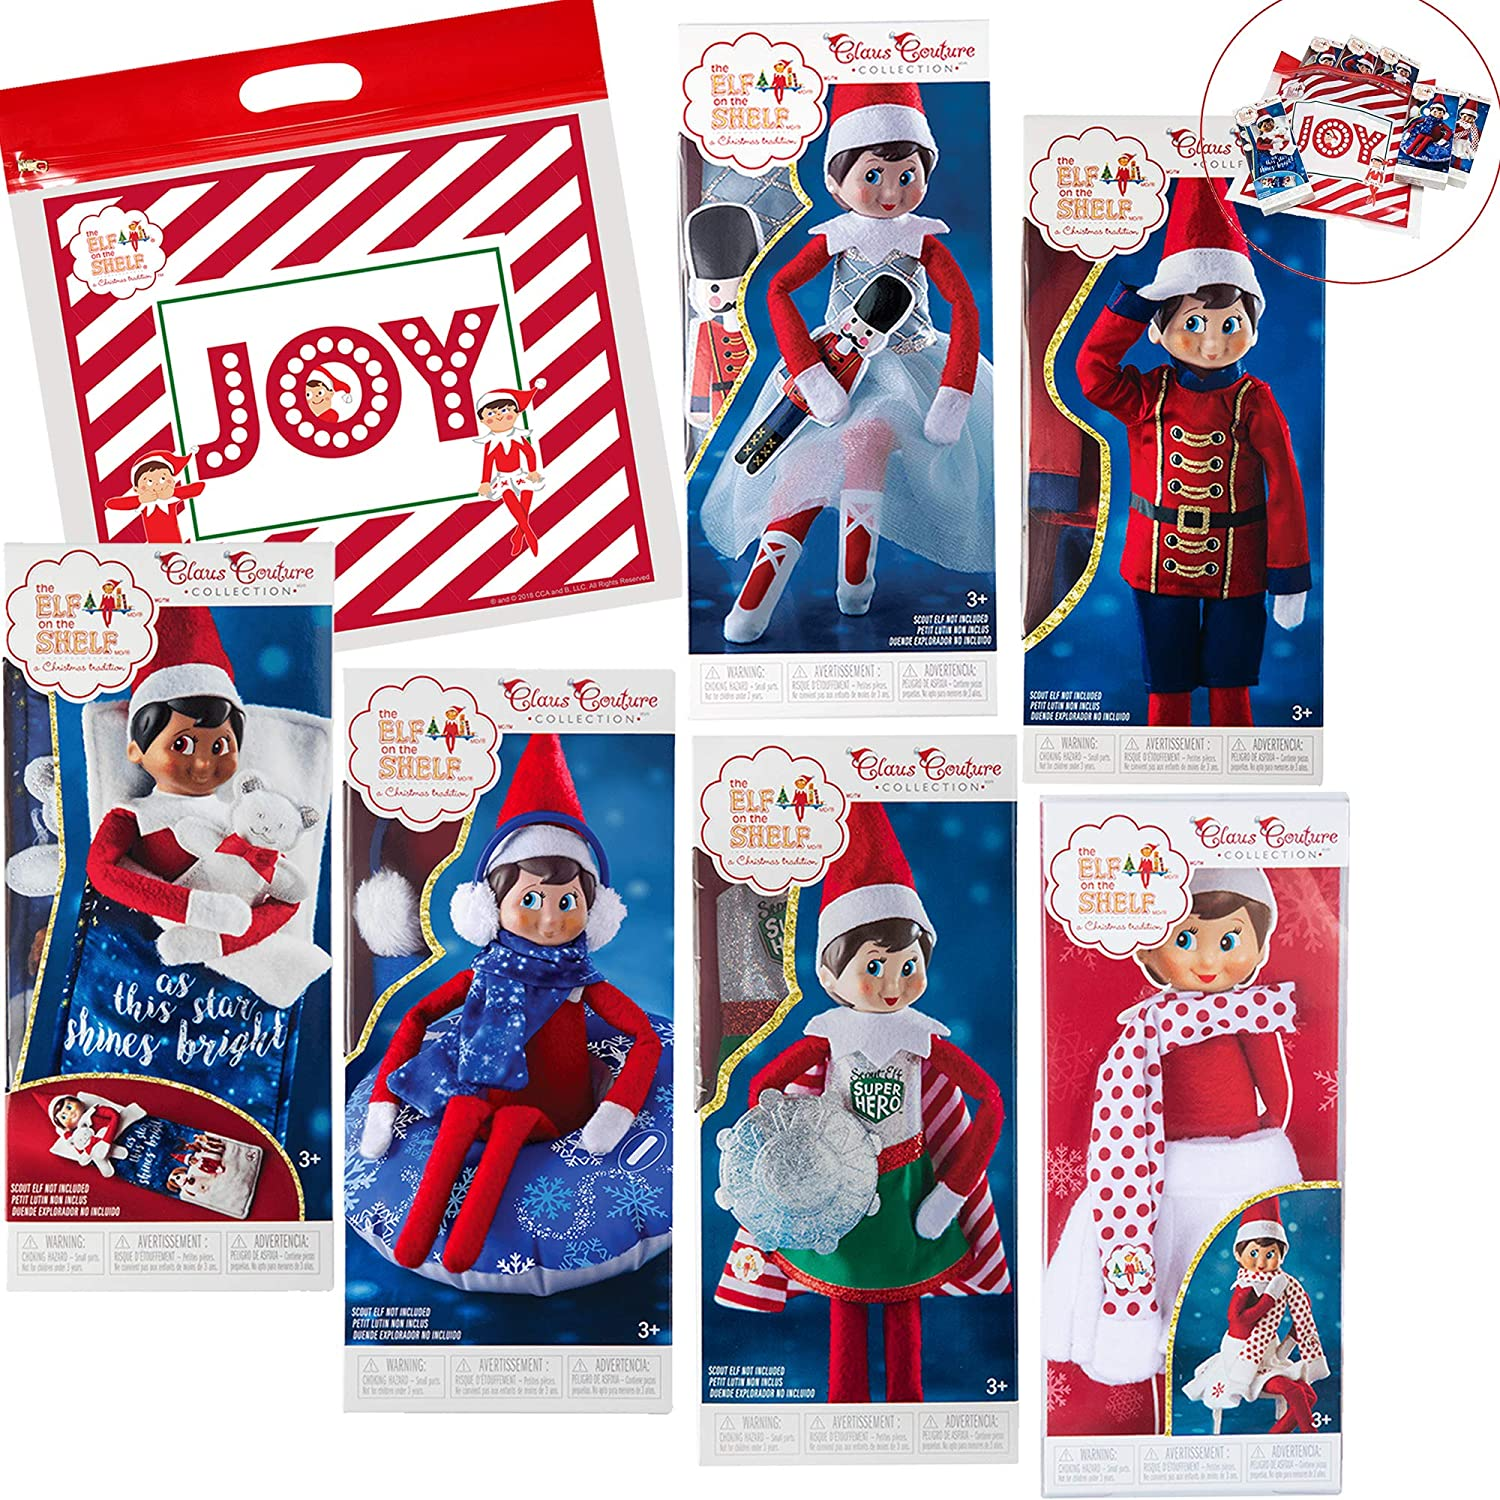 Elf on The Shelf Claus Couture Complete Scout Elf Accessories Pack, Set of 6 Outfits with Exclusive Joy Travel Bag